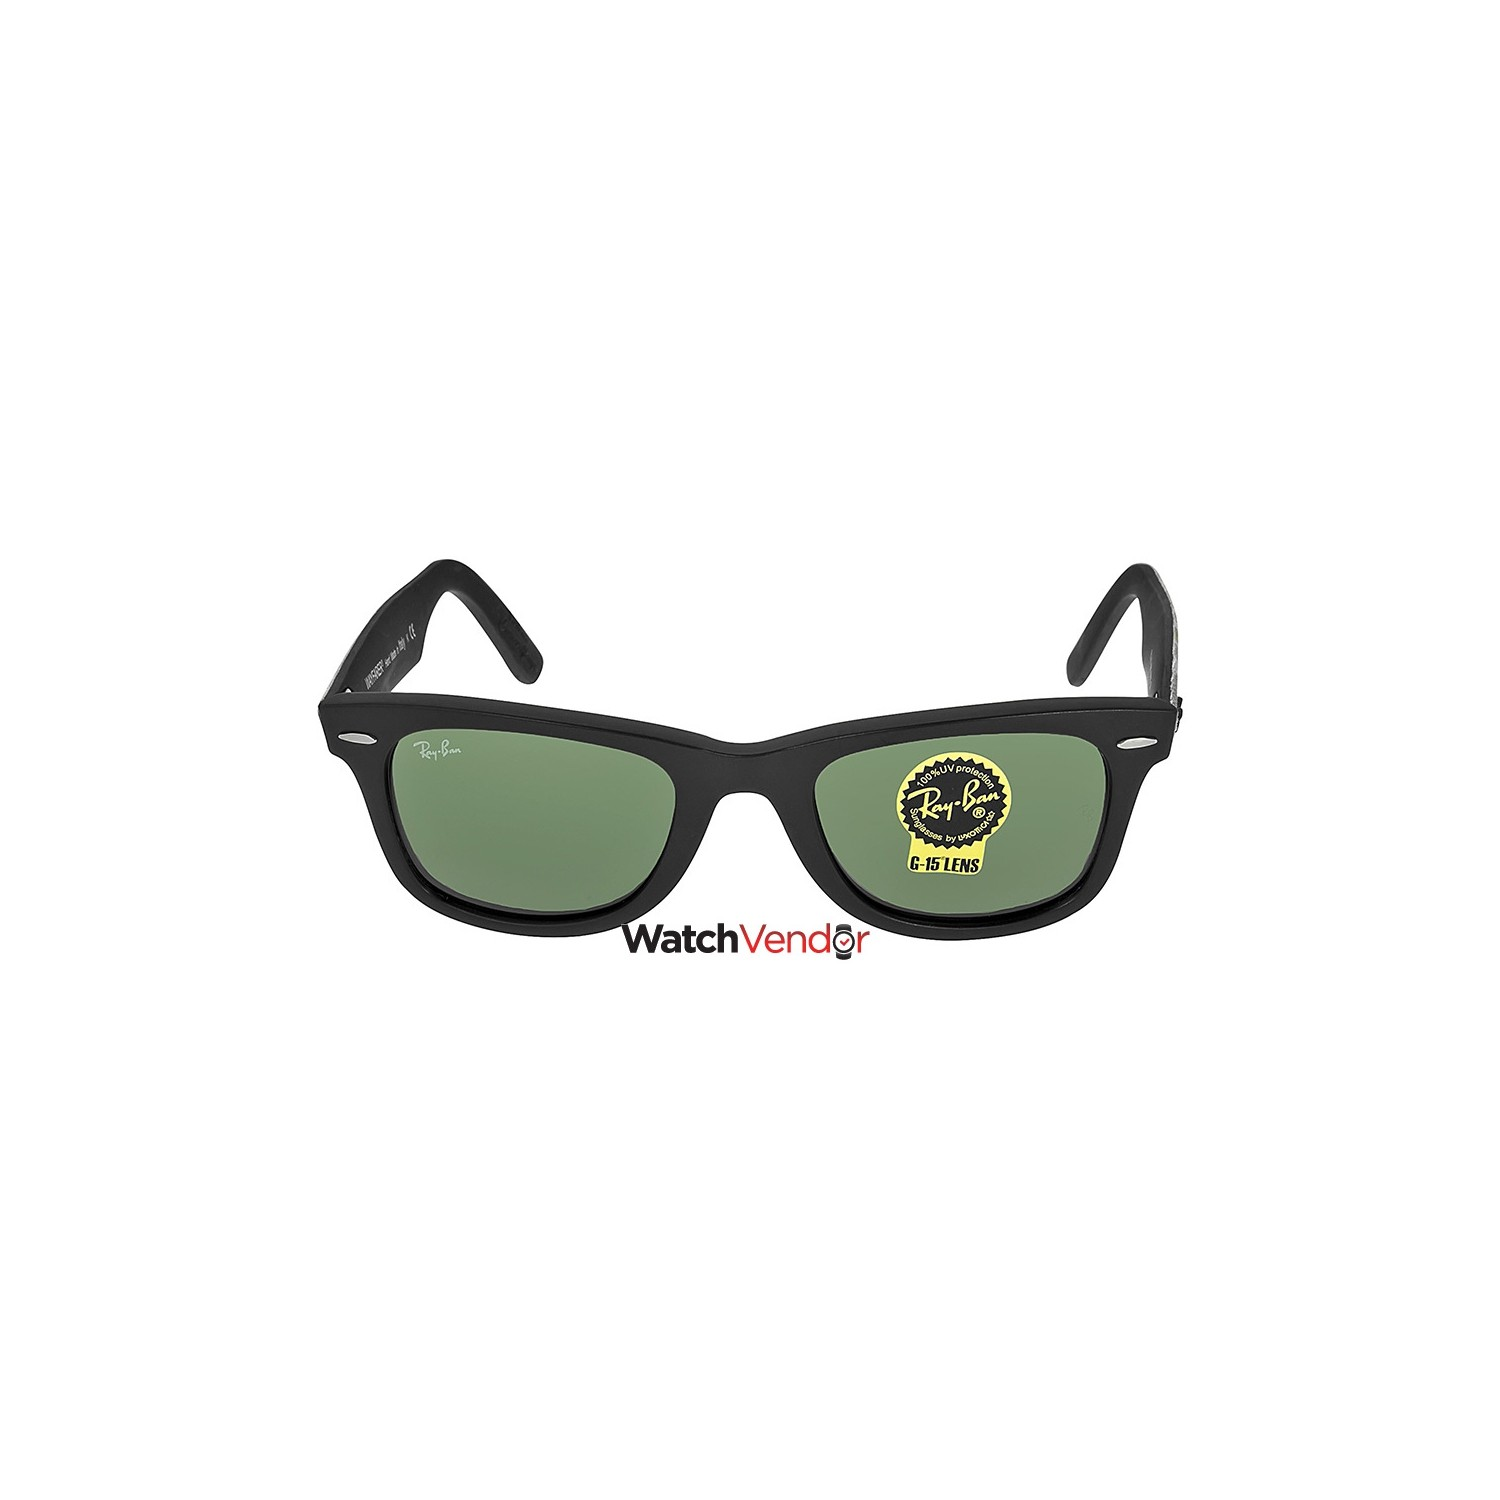 81208a4bbf ... order ray ban original wayfarer black and green frames 50mm sunglasses  rb2140 50 6065 sunglasses best